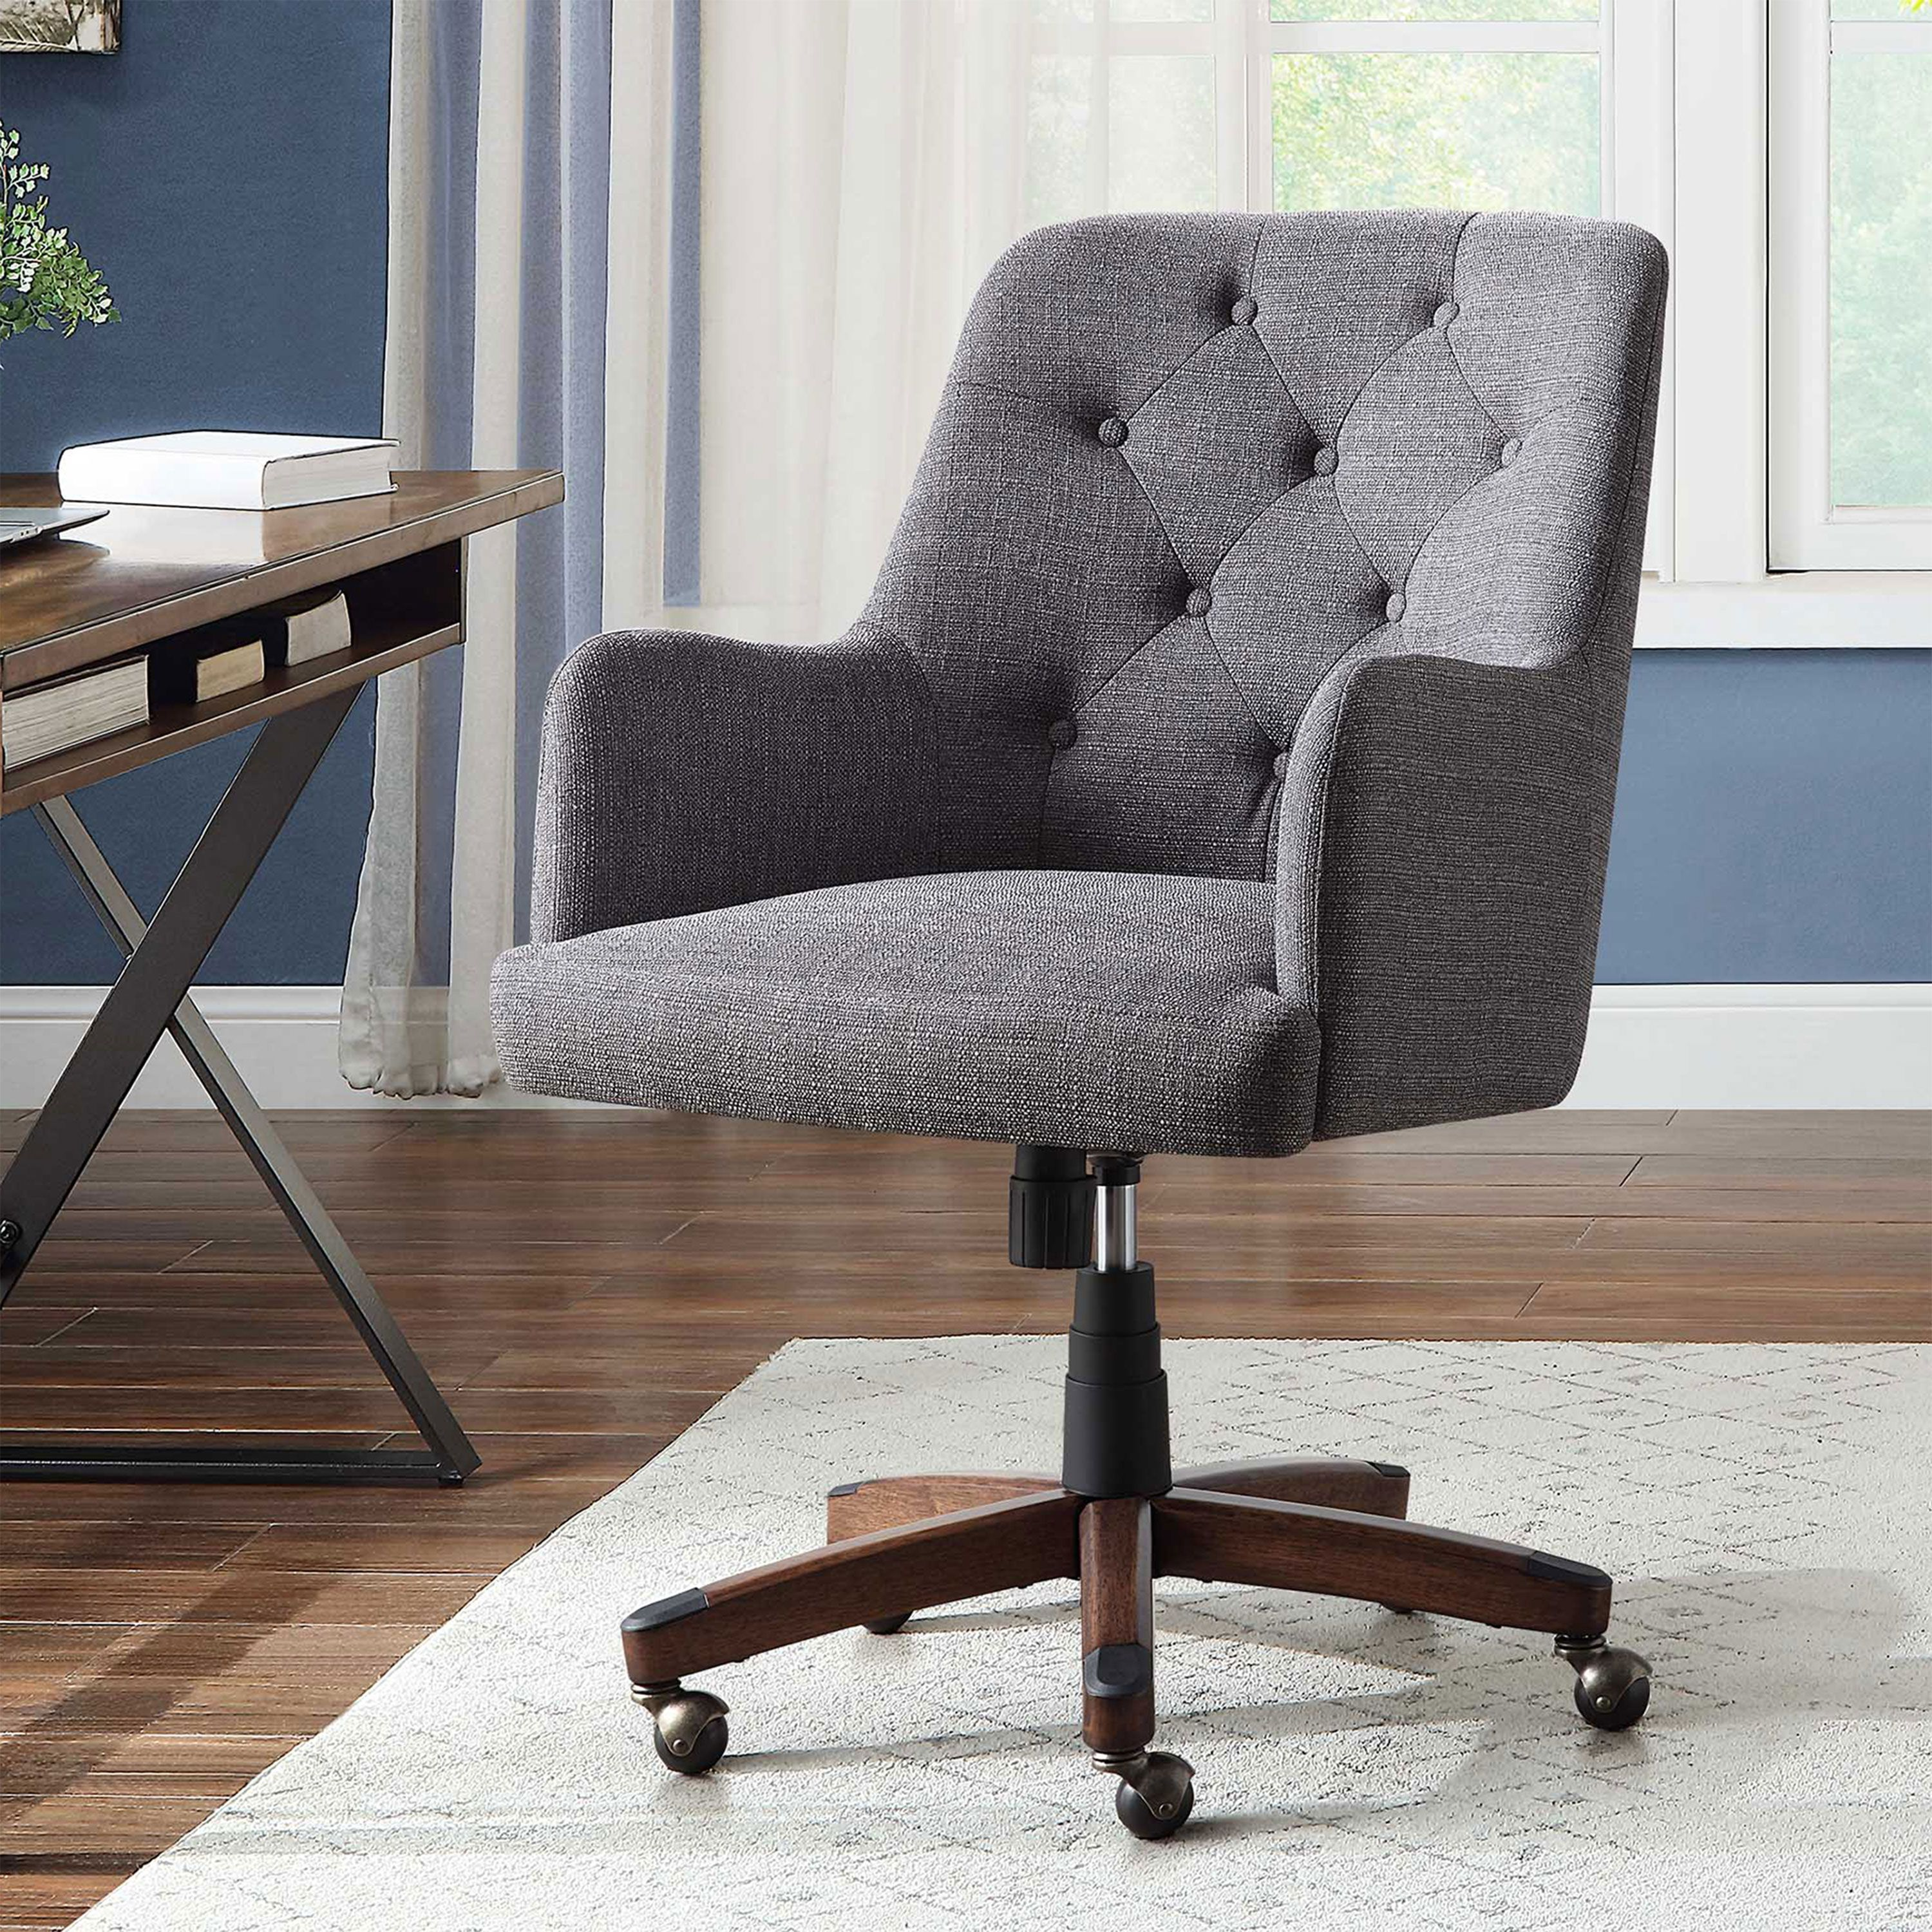 Better Homes Gardens Tufted Office Chair Gray Fabric Upholstery And Espresso Wood Base Walmart Com In 2020 Tufted Office Chair Stylish Office Chairs Office Chair